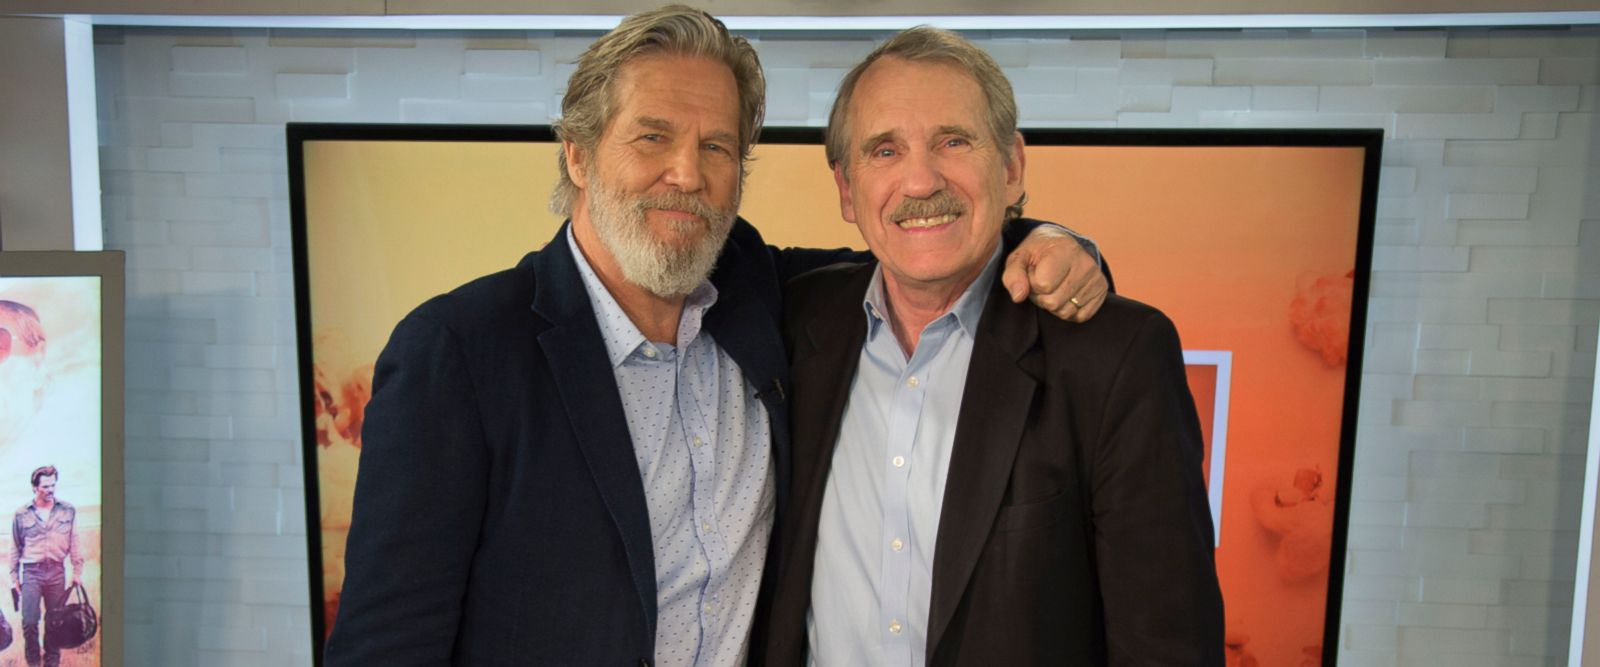 VIDEO: Jeff Bridges Talks 'Hell or High Water' and the One Thing That's Always the Same in His Films